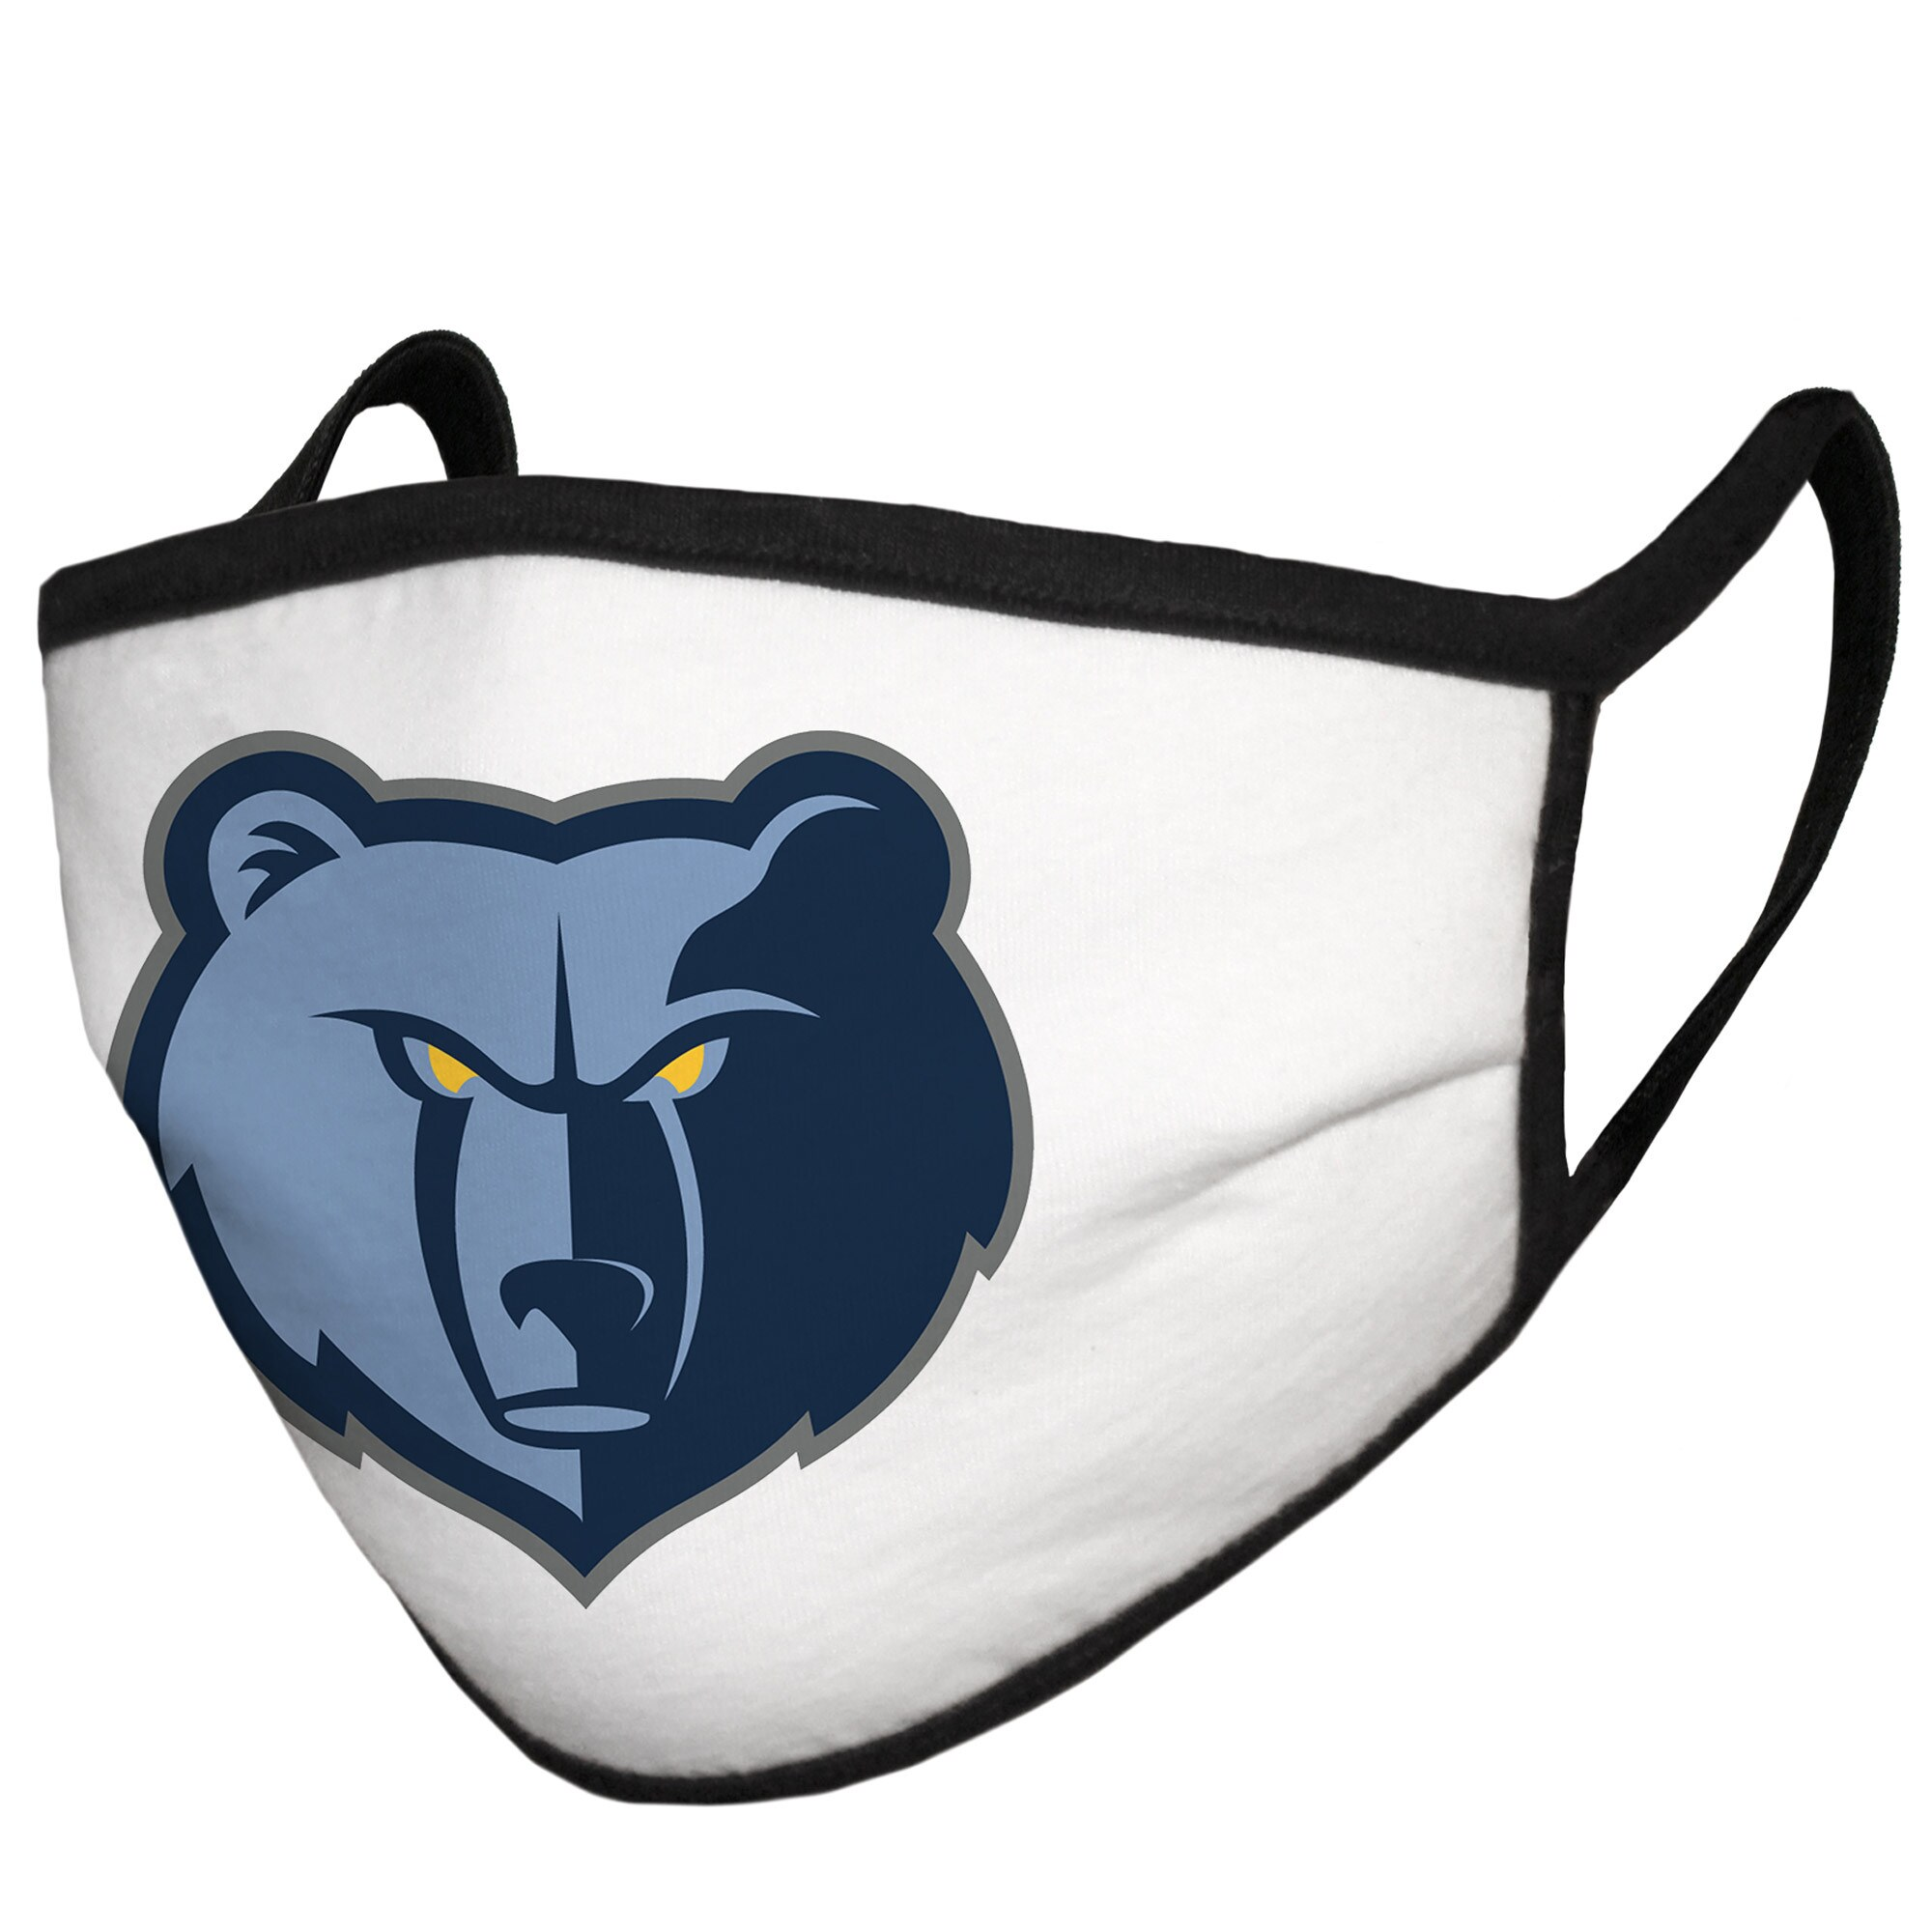 Memphis Grizzlies Fanatics Branded Cloth Face Covering (Size Small) - MADE IN USA